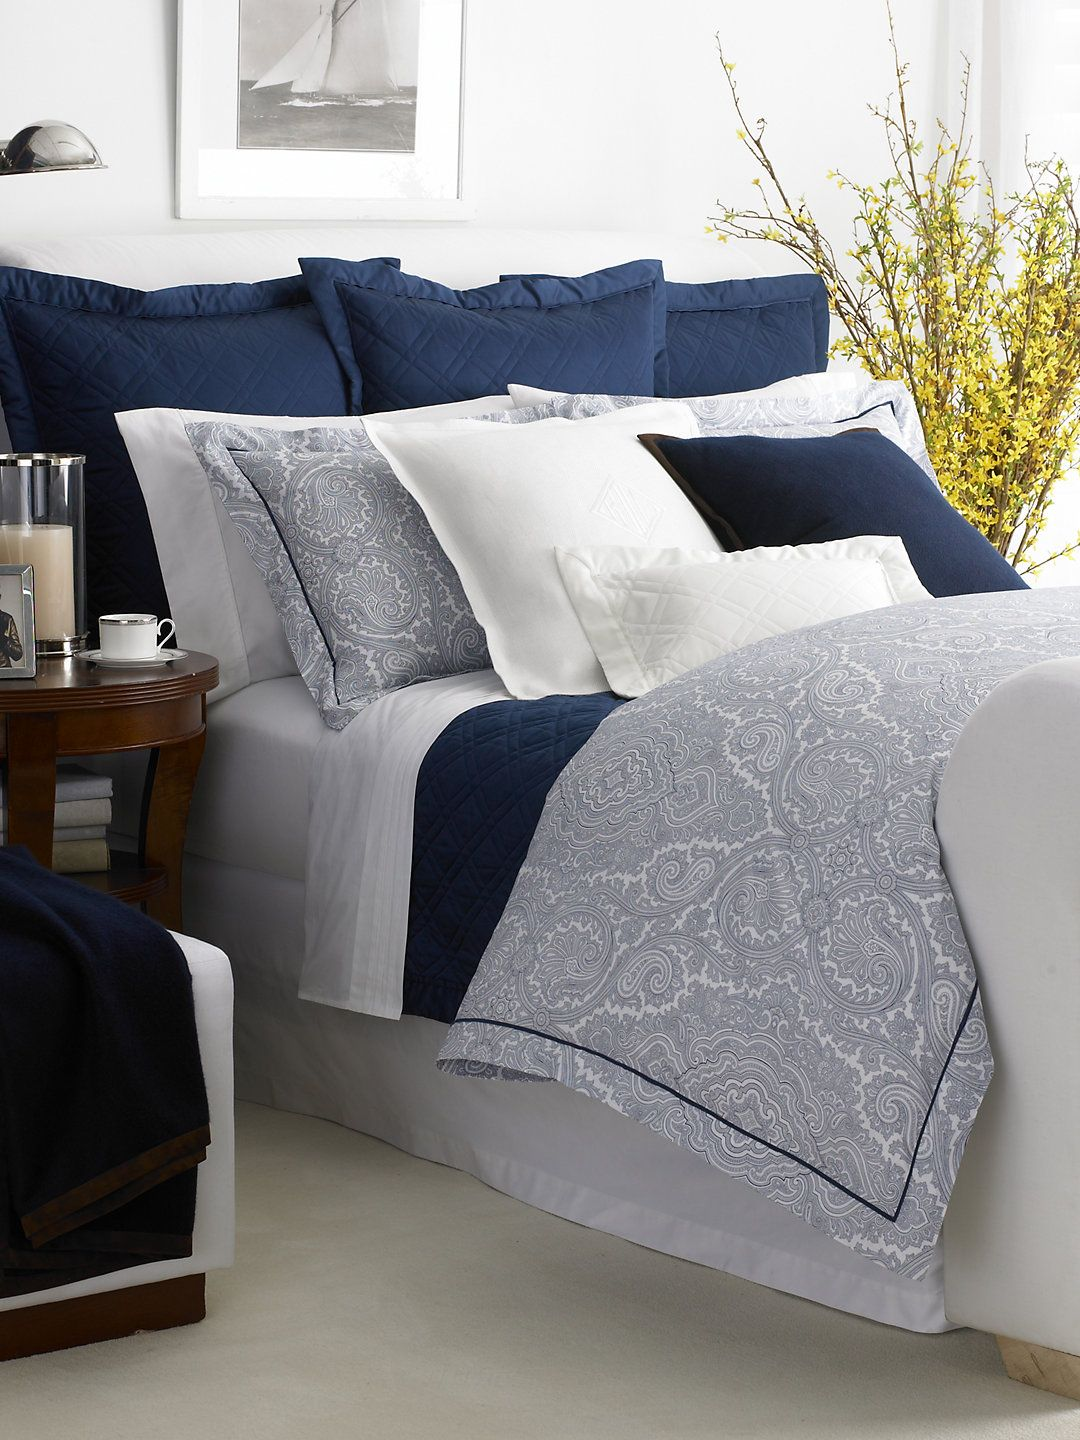 I Would Use Ivory Grey Or Butter Cream Isntead Of White Navy